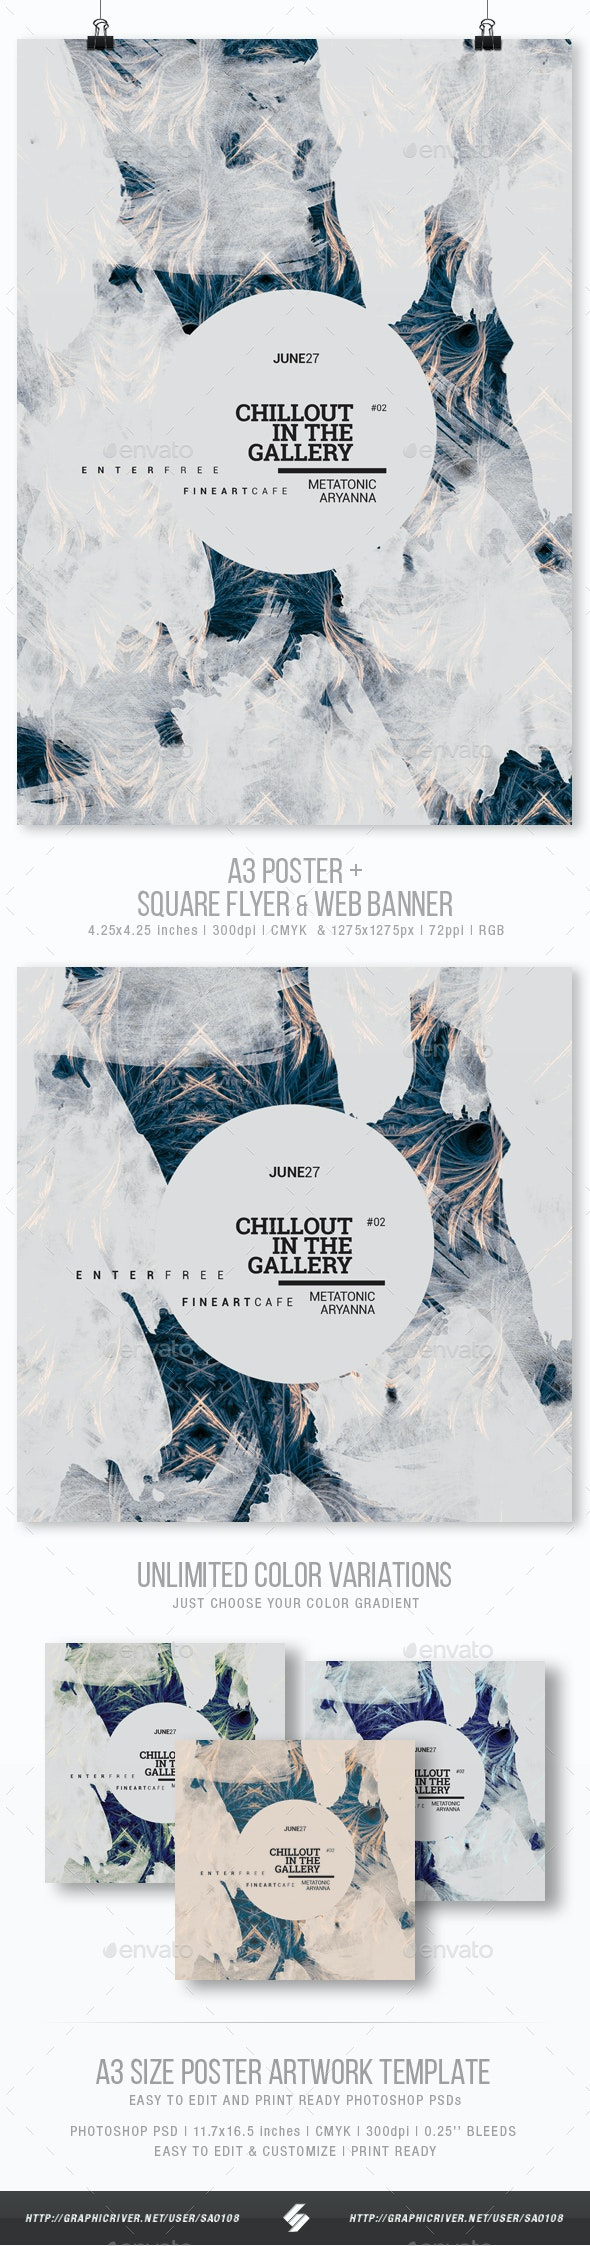 Chillout In The Gallery vol.2 - Event Flyer / Poster Template A3 - Events Flyers